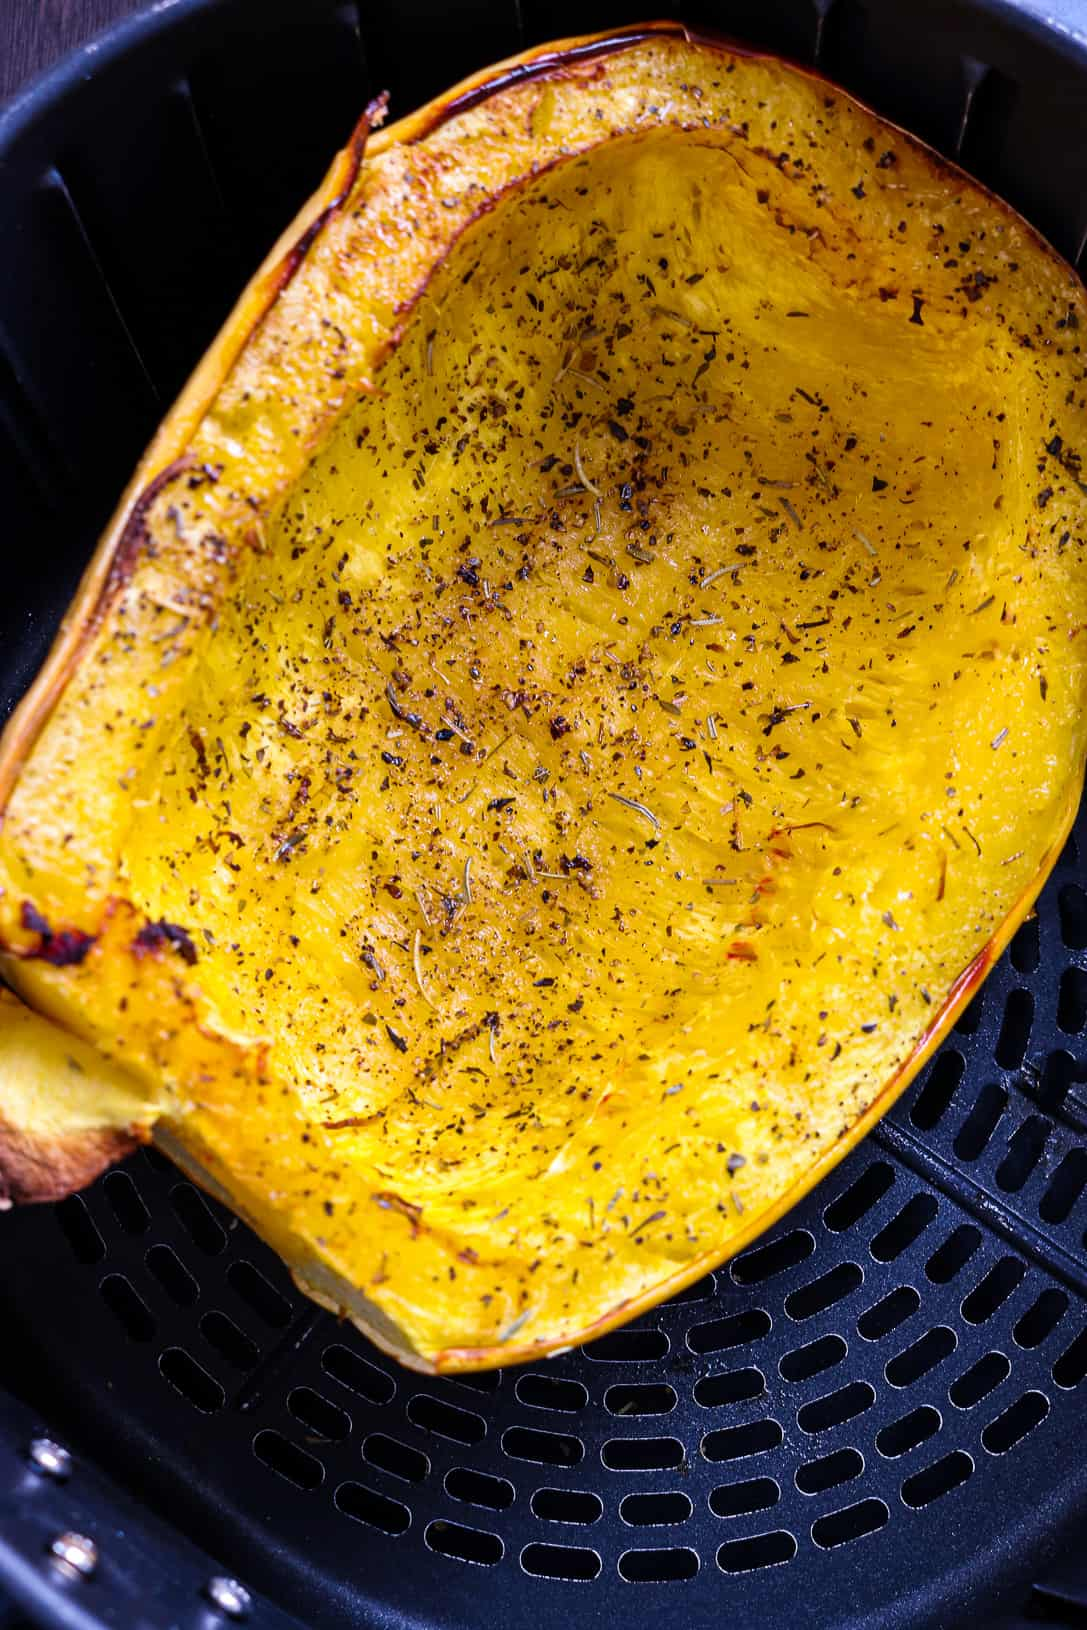 cooked spaghetti squash in air fryer basket